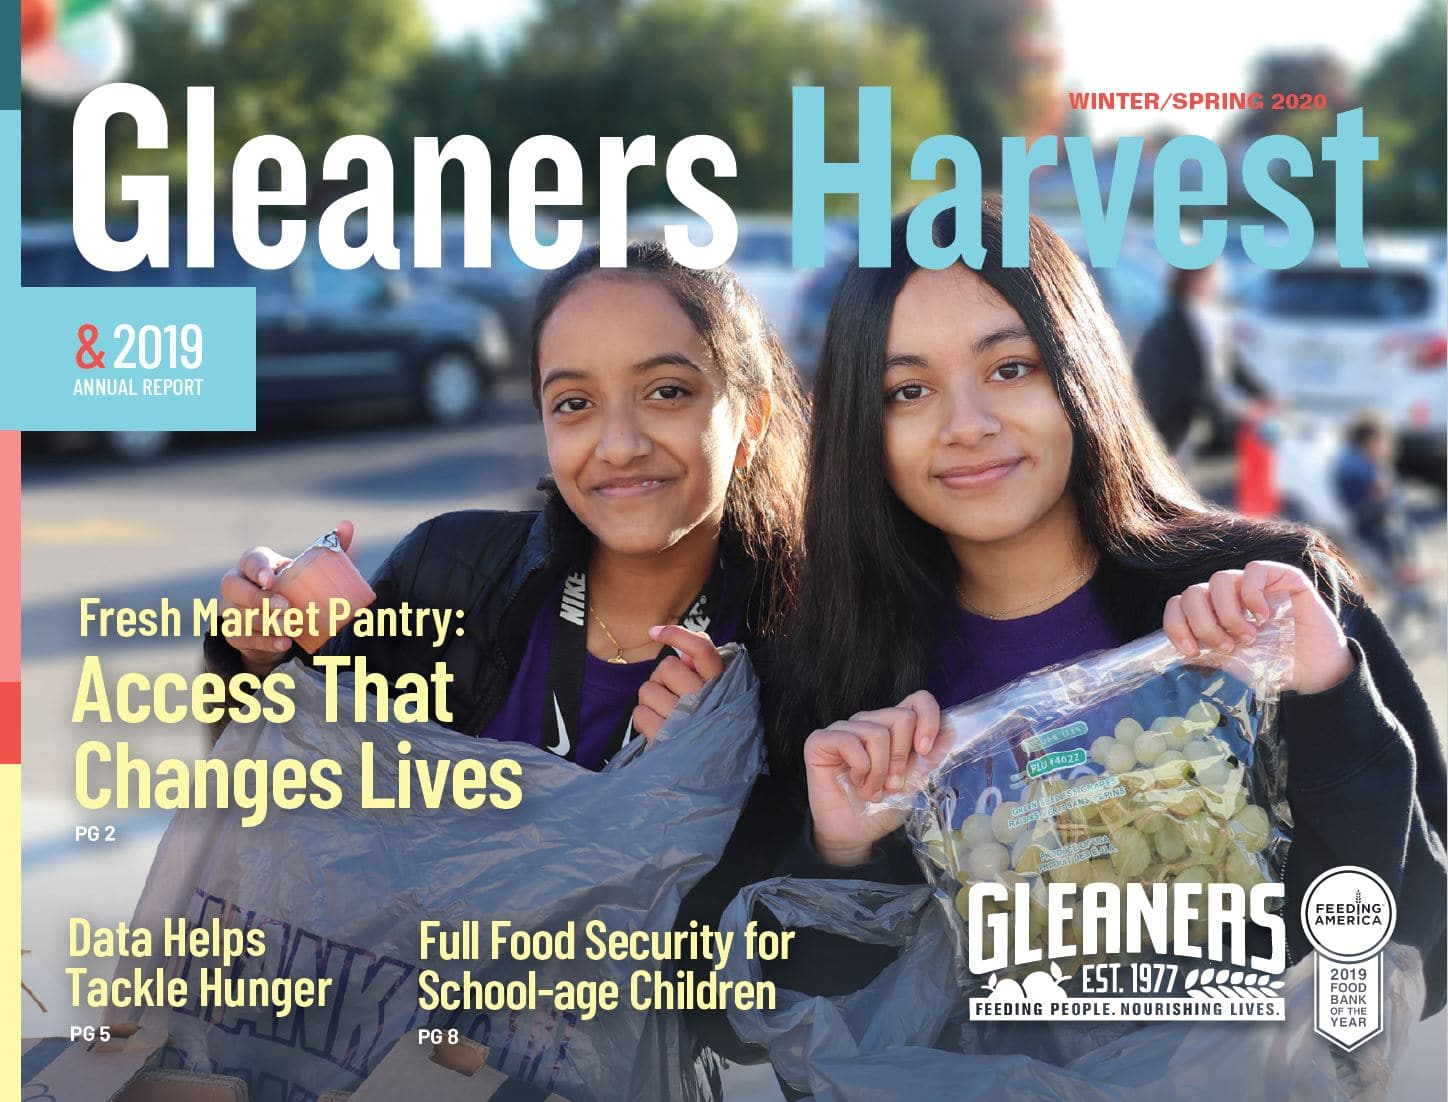 Gleaners 2020 Harvest